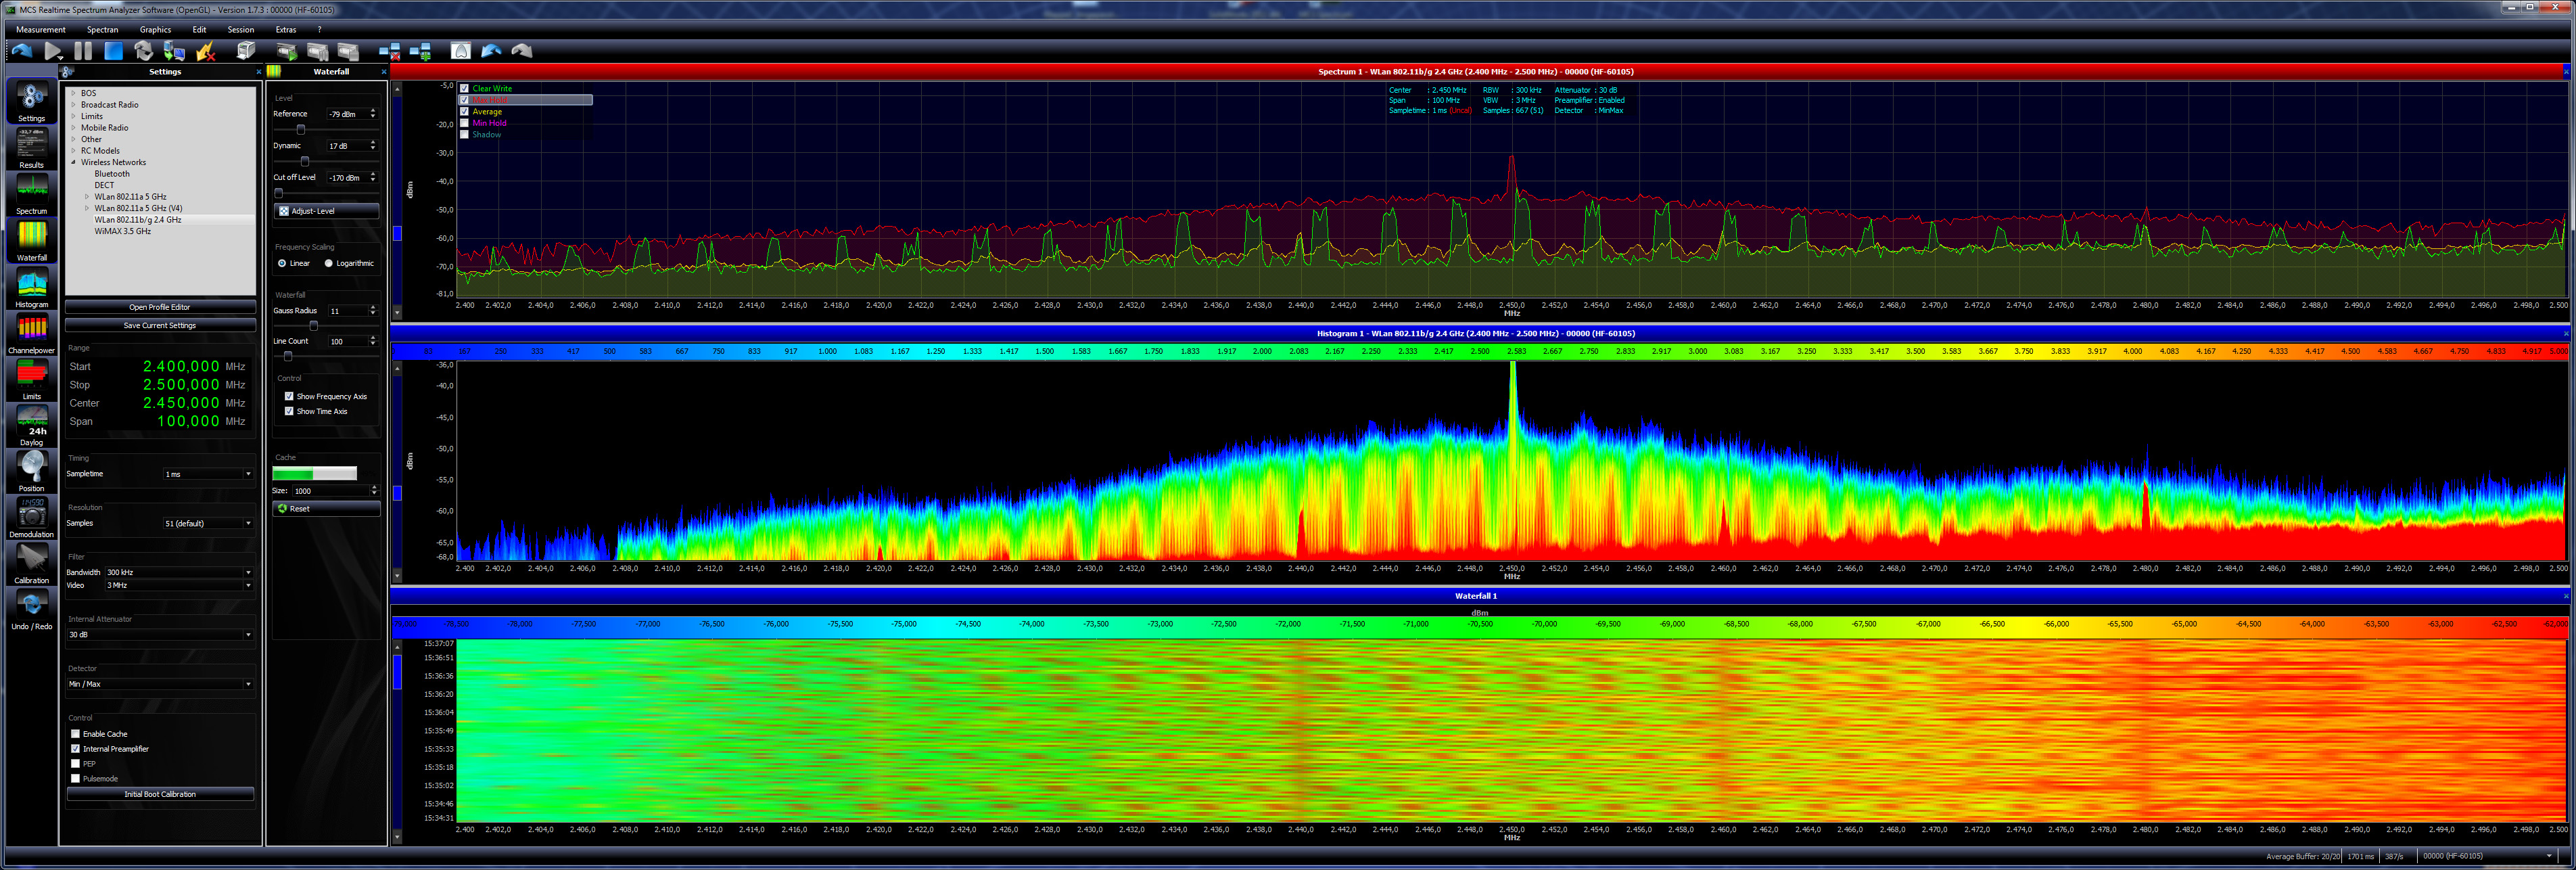 Spectrum Analyzer Software MCS